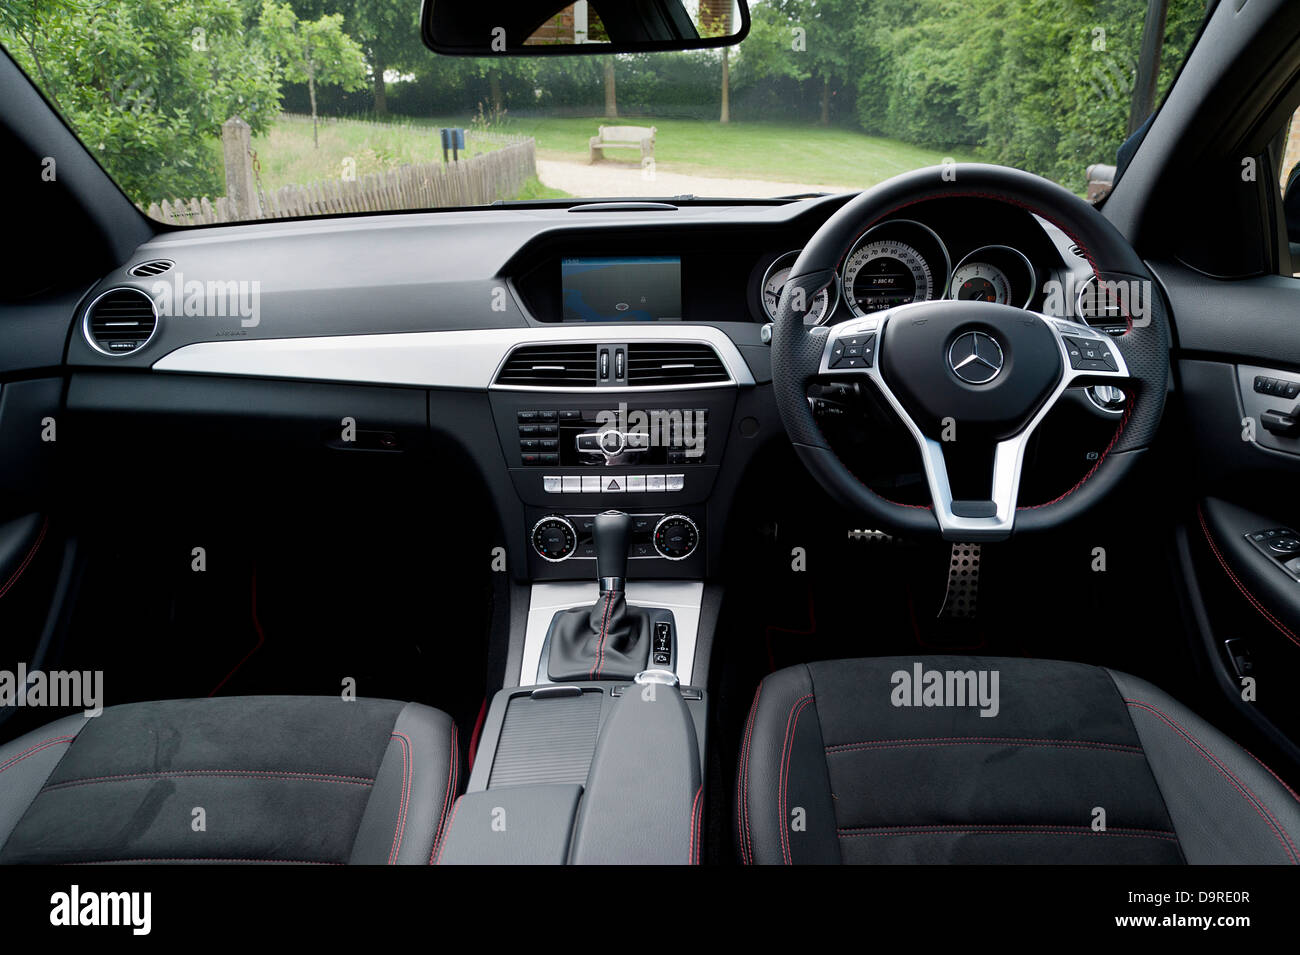 Interior Of Mercedes Benz C250 Coupe Amg Sport 2013 Stock Photo